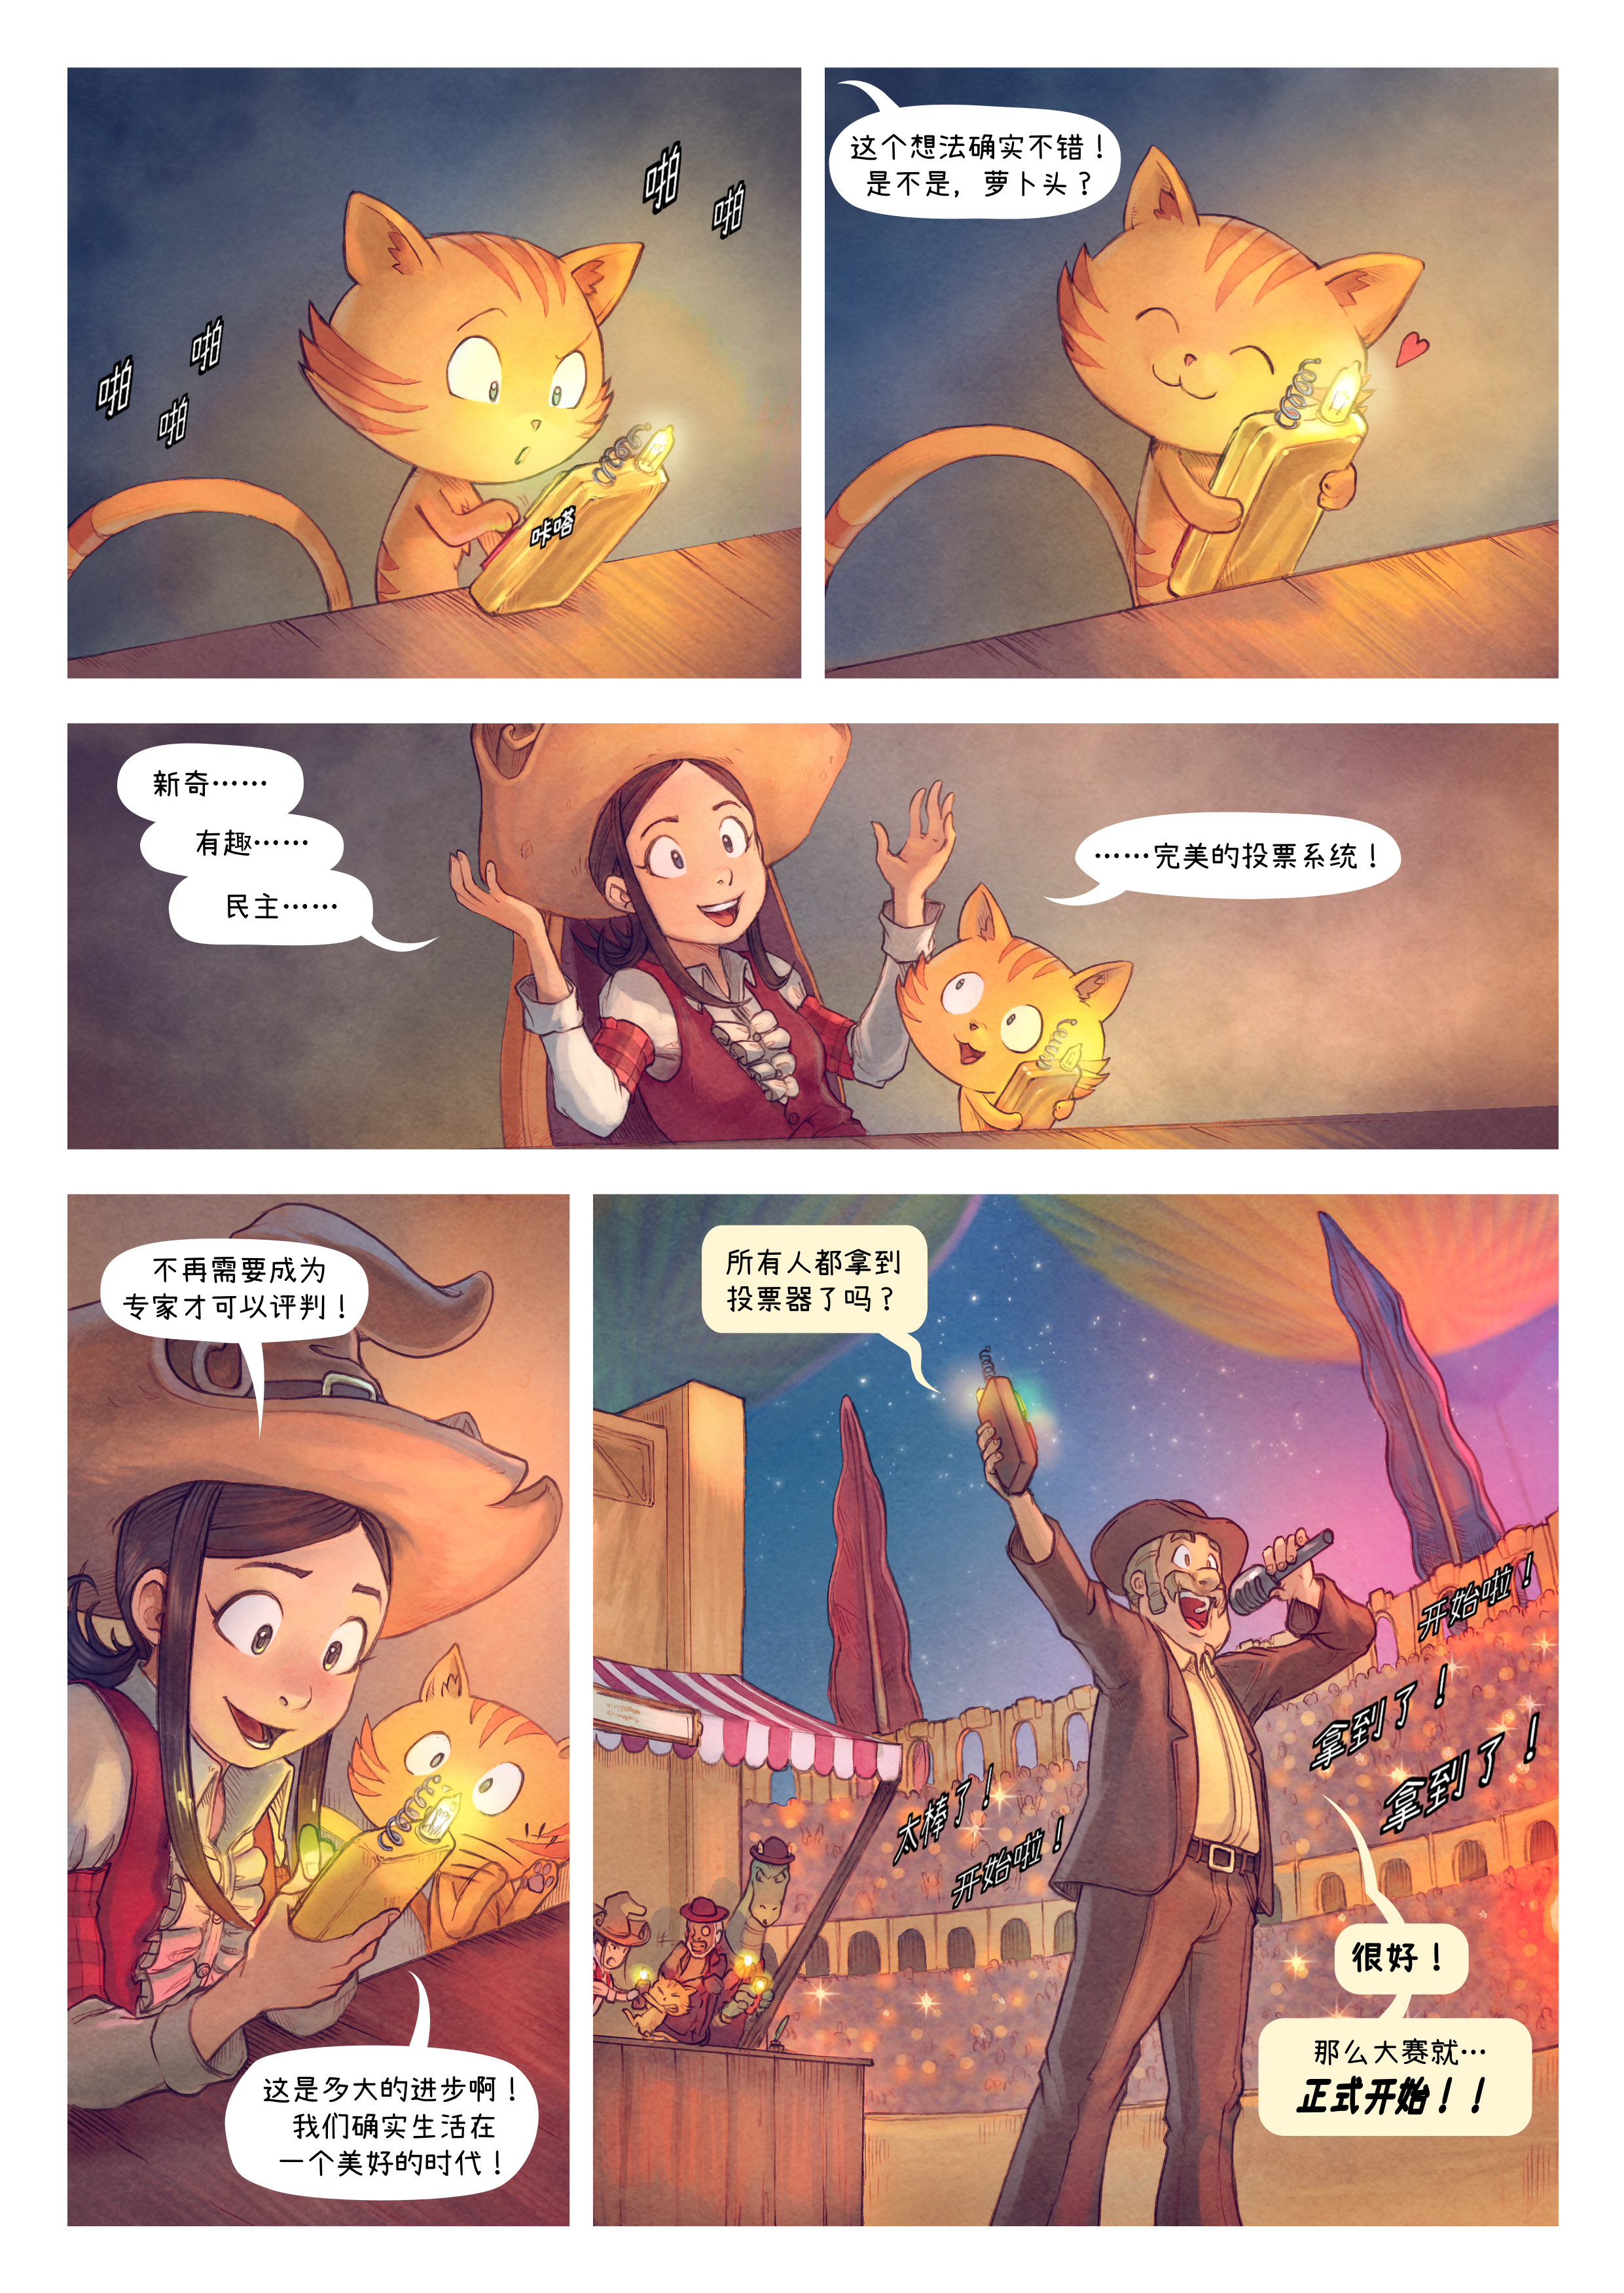 A webcomic page of Pepper&Carrot, 漫画全集 22 [cn], 页面 4